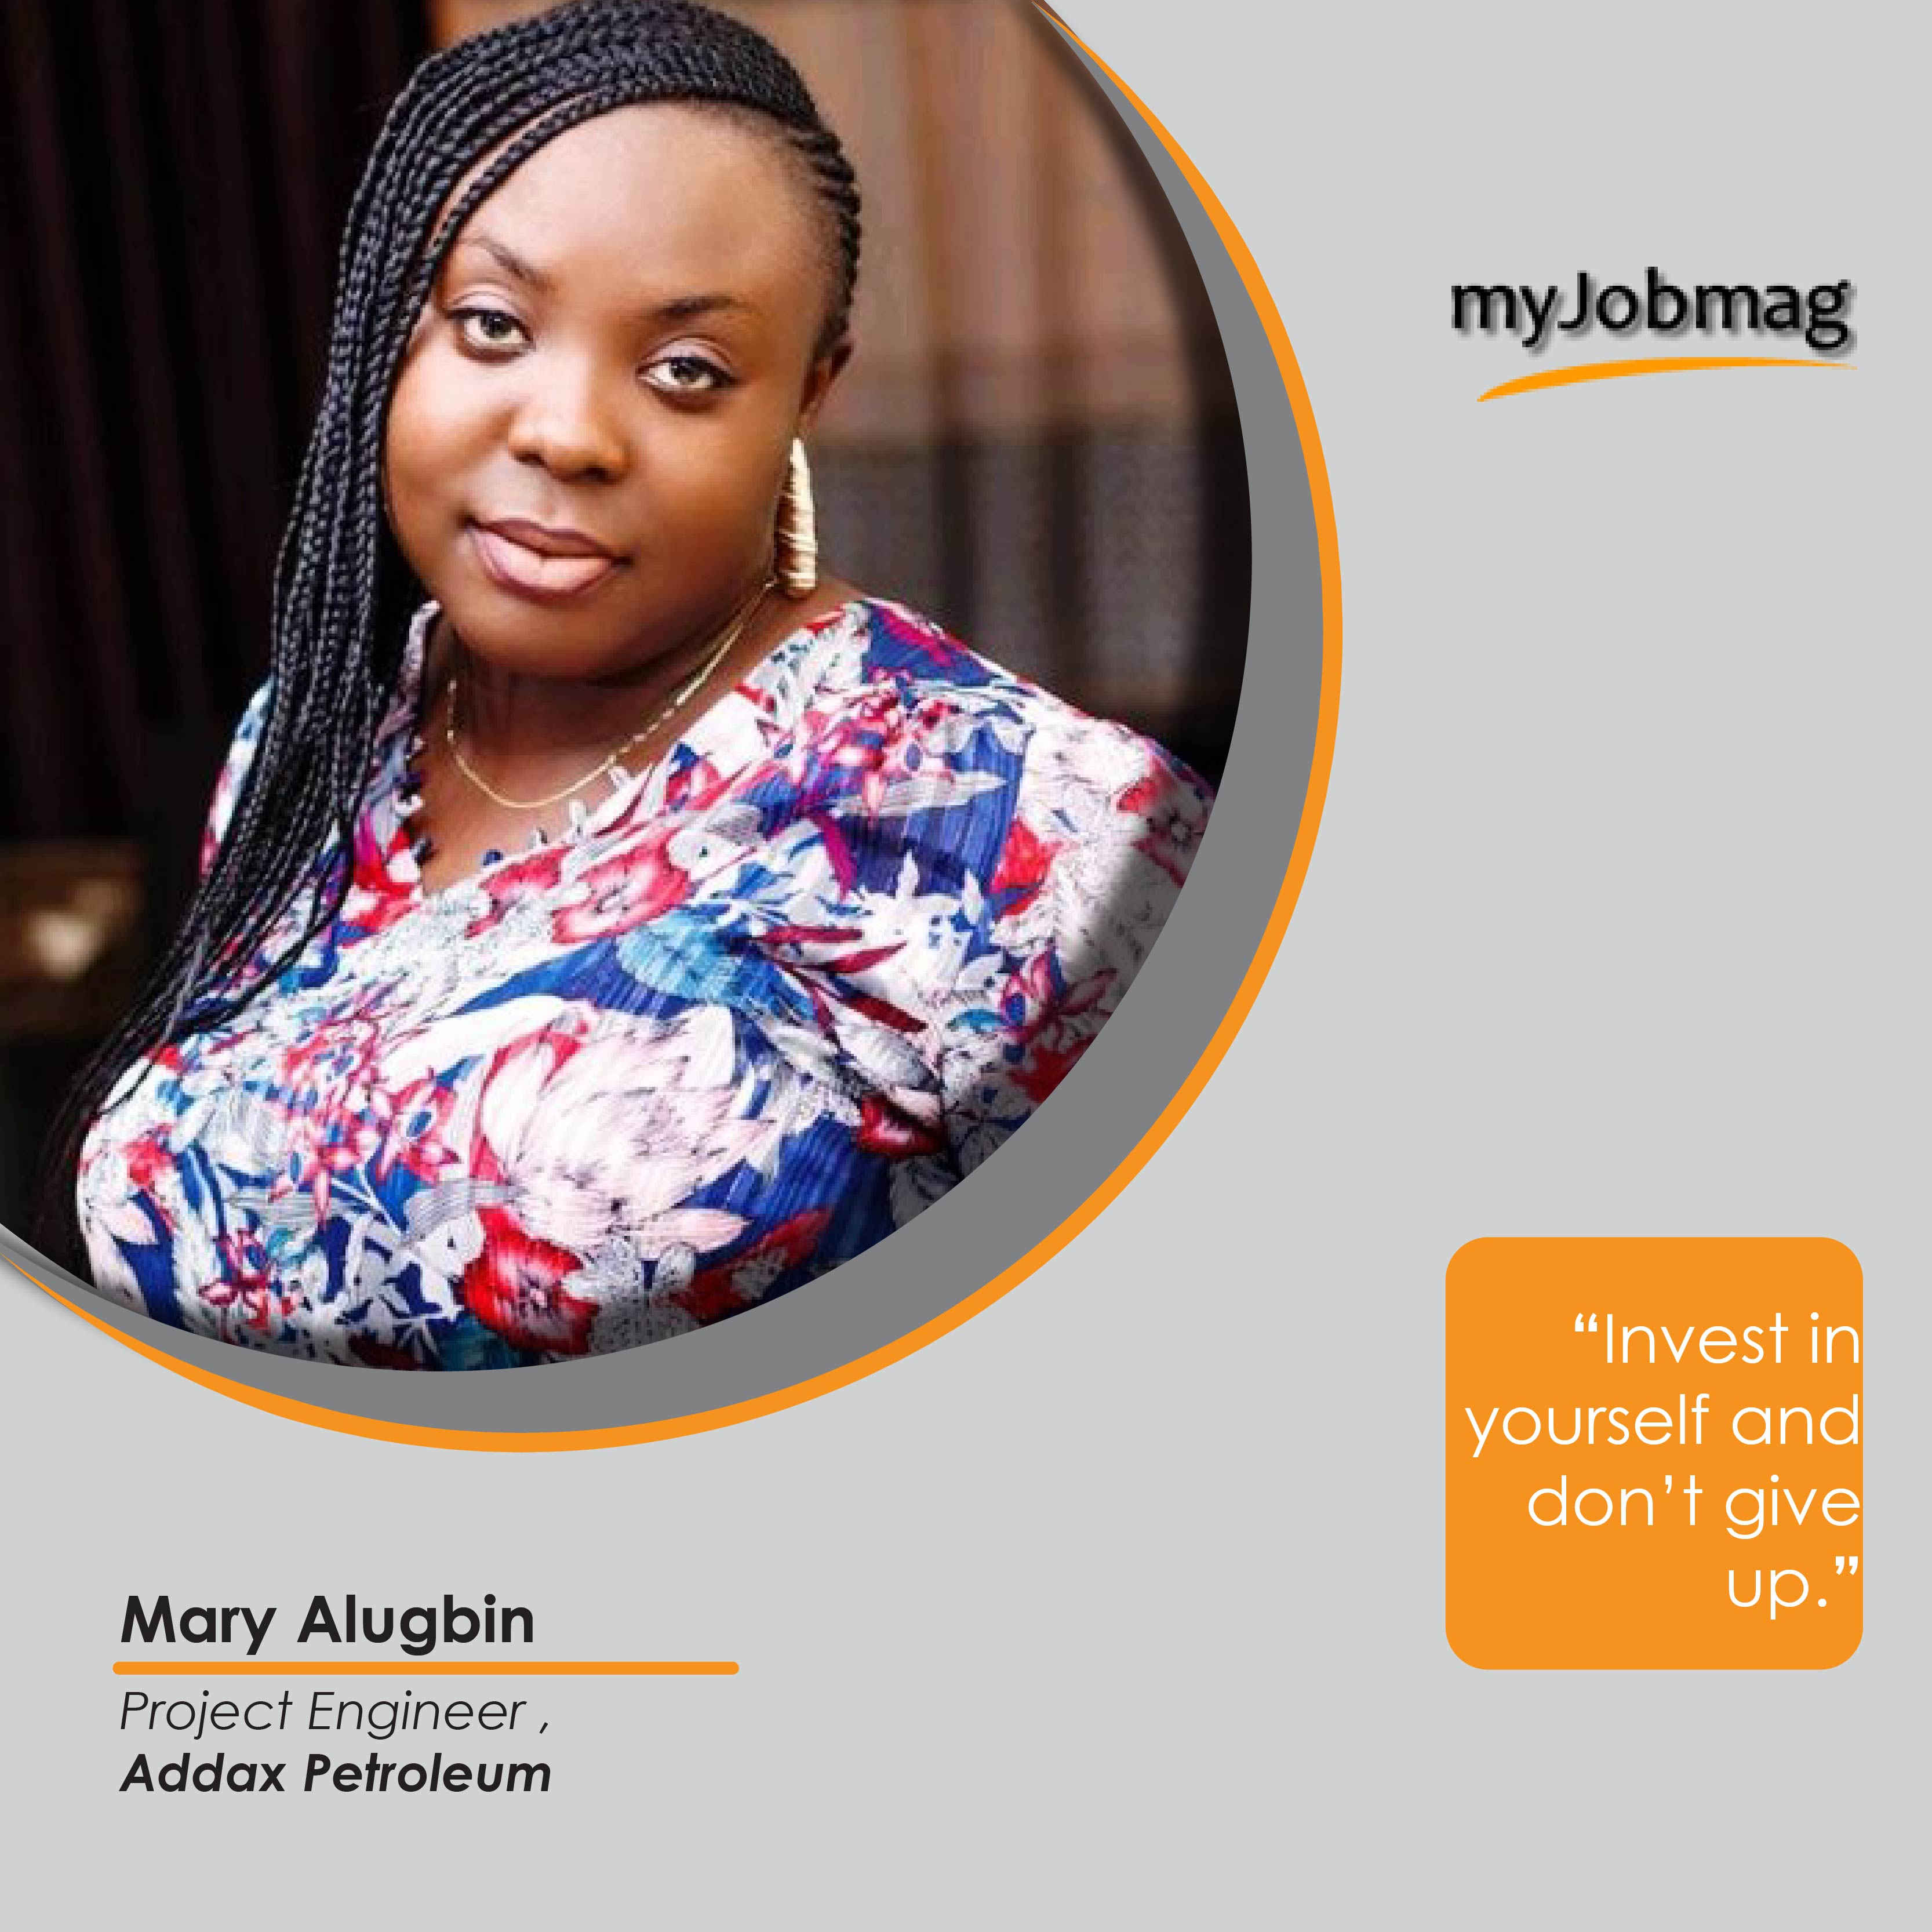 Mary Alugbin career advice MyJobMag